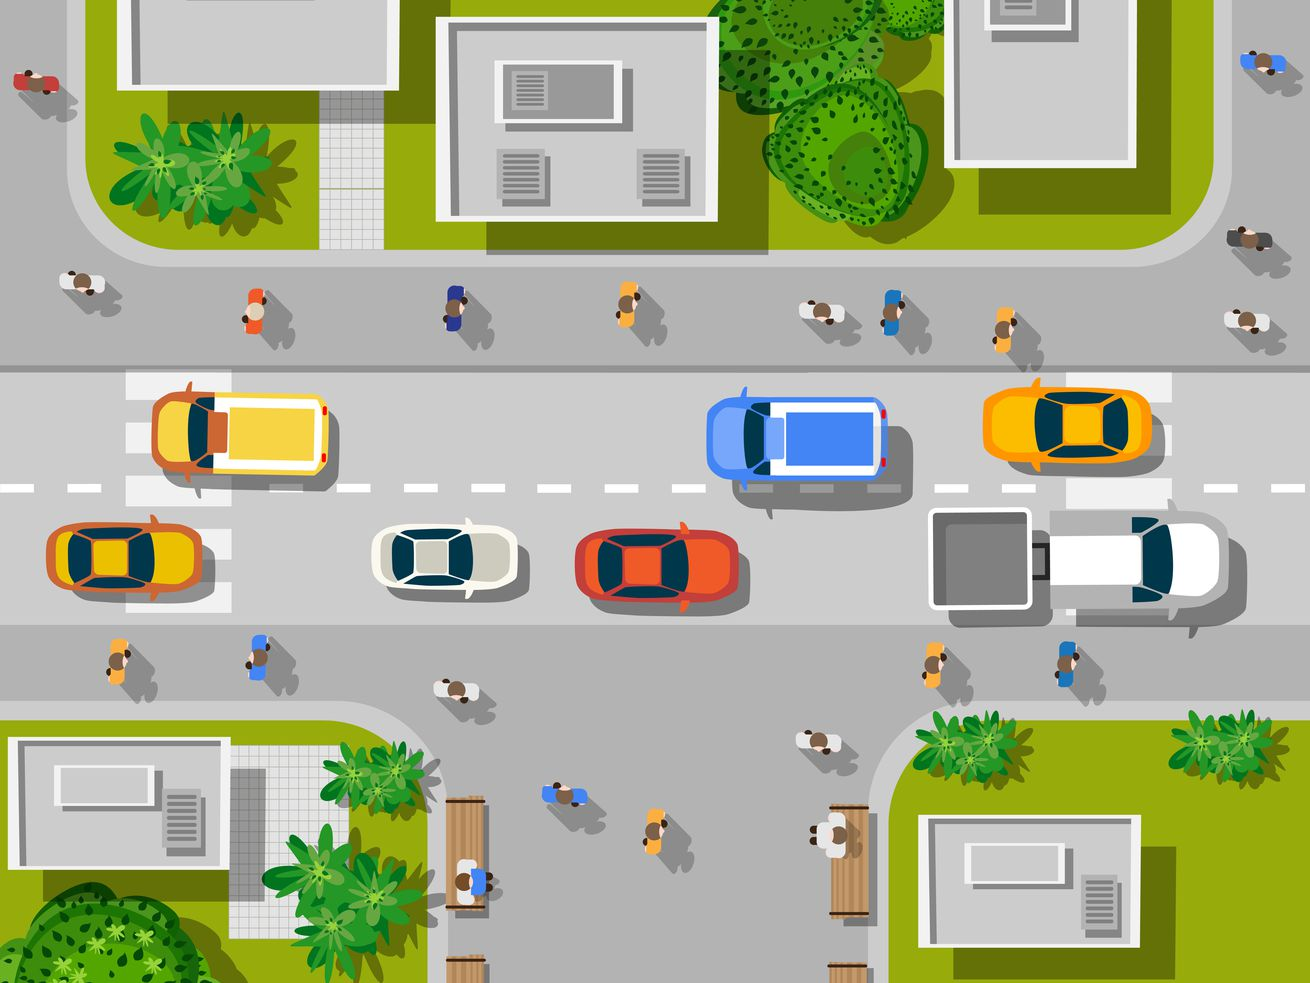 The problem with turning urban challenges into games